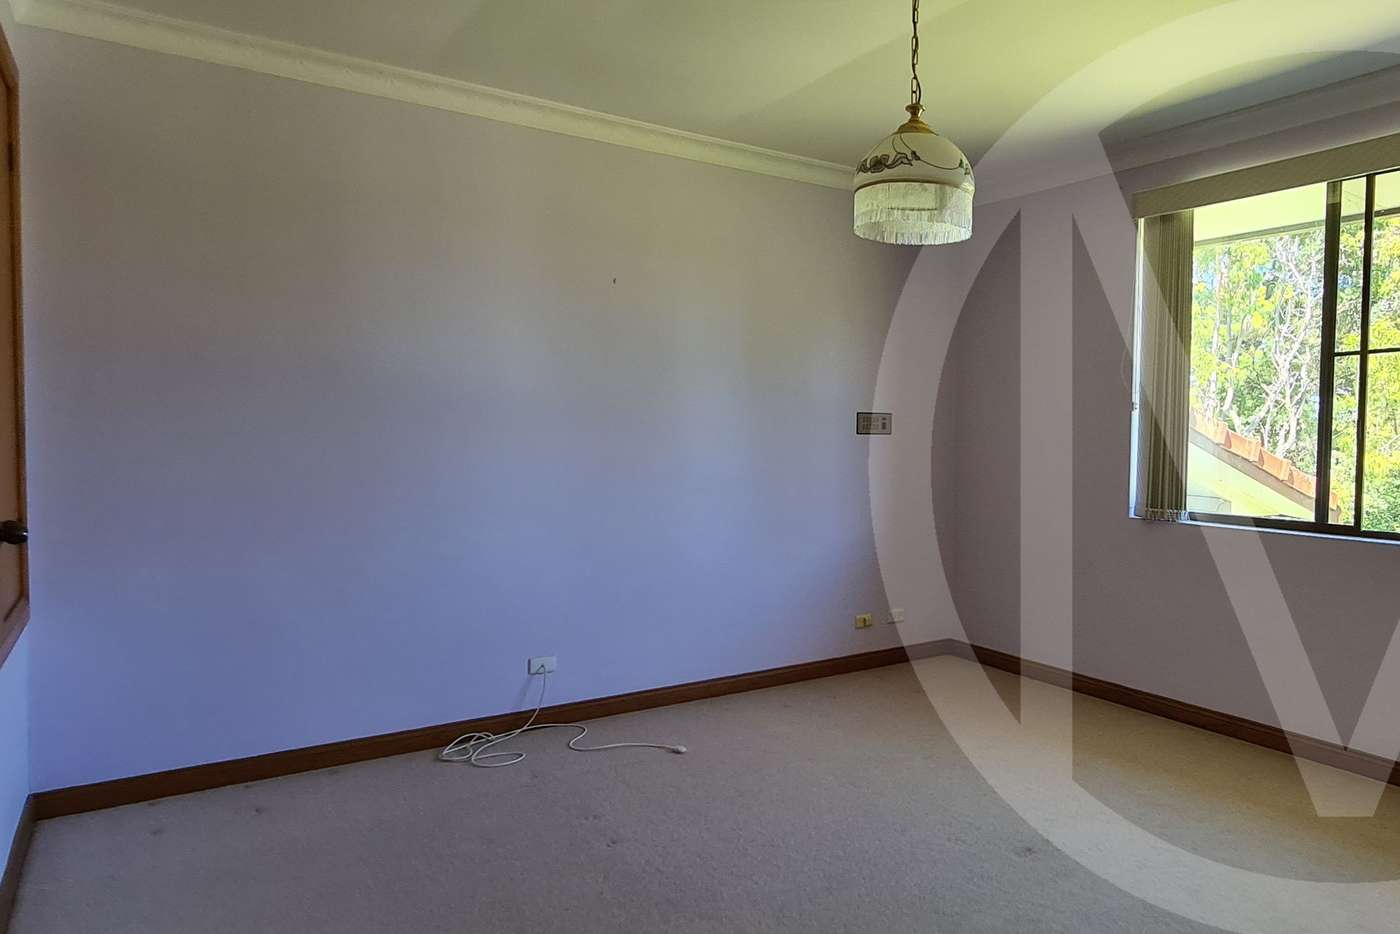 Seventh view of Homely house listing, 2 Vineys Road, Dural NSW 2158